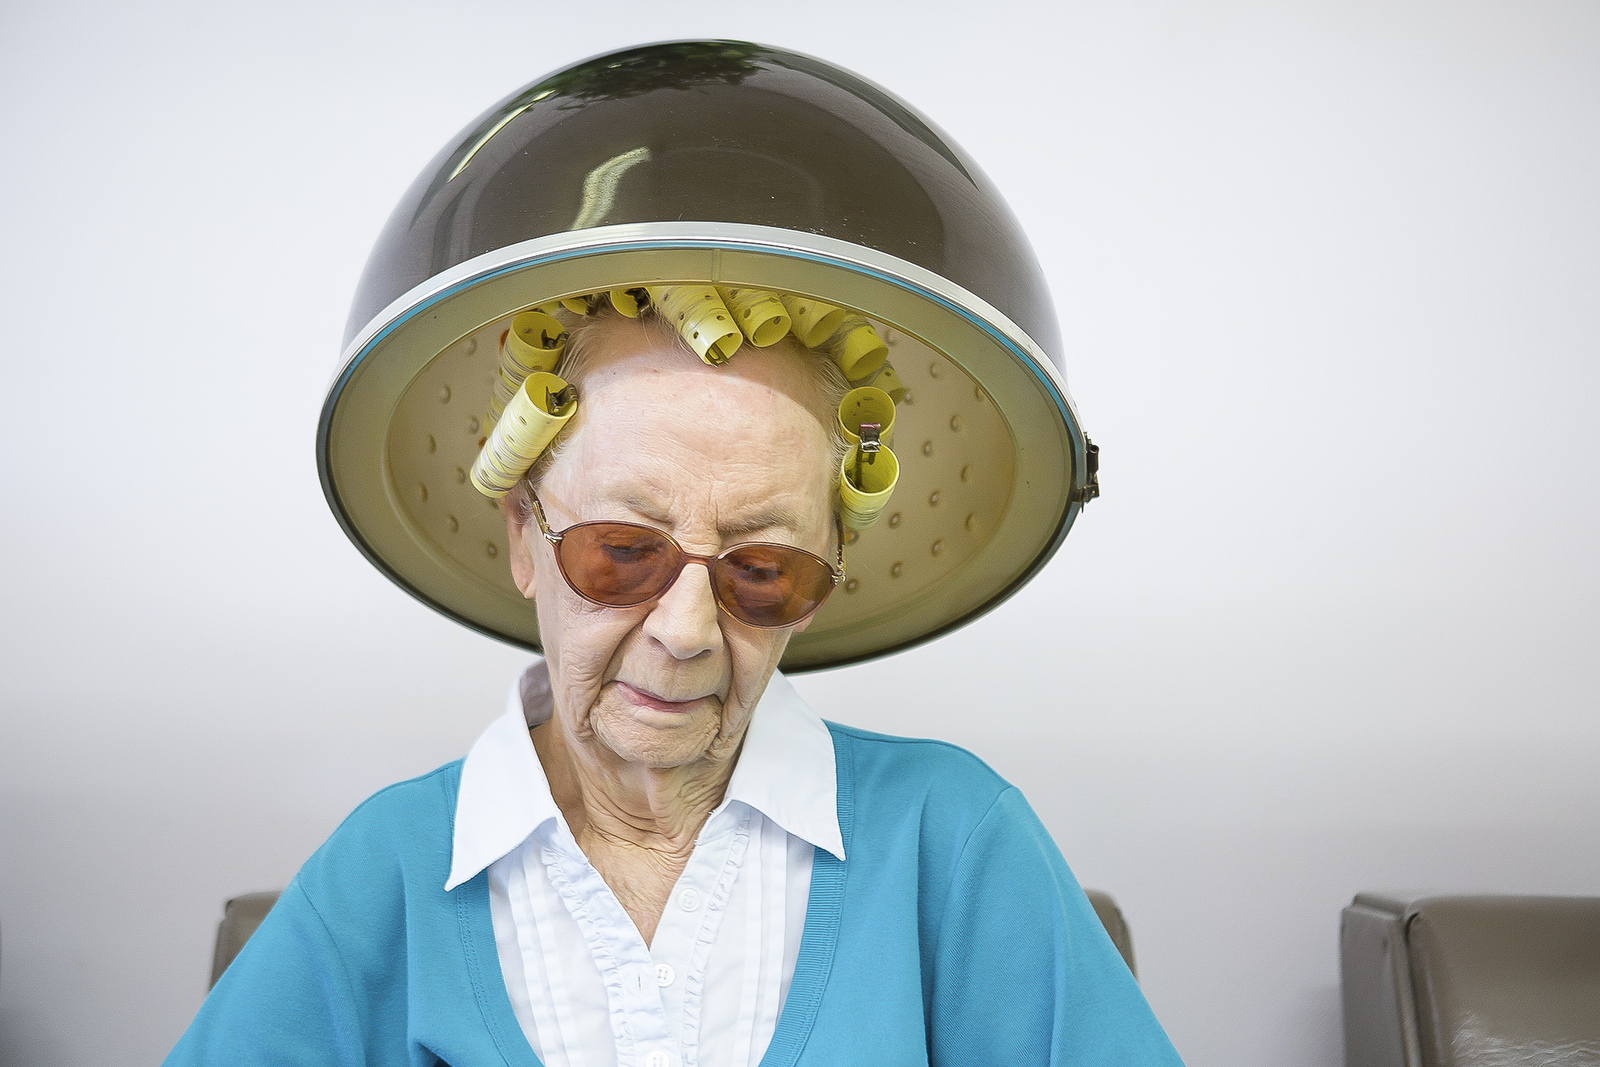 Mildred Kohler, 98, waits for her hair to dry at Fashionaire Salon. Tucked among the swirling traffic of a crowded strip mall, the salon is place that time appears to have passed by. Finding a customer under the age of 50 is hard to do as women in their 80s and 90s shuffle around to pick at sweet treats that owner Elaine Hill bakes everyday.